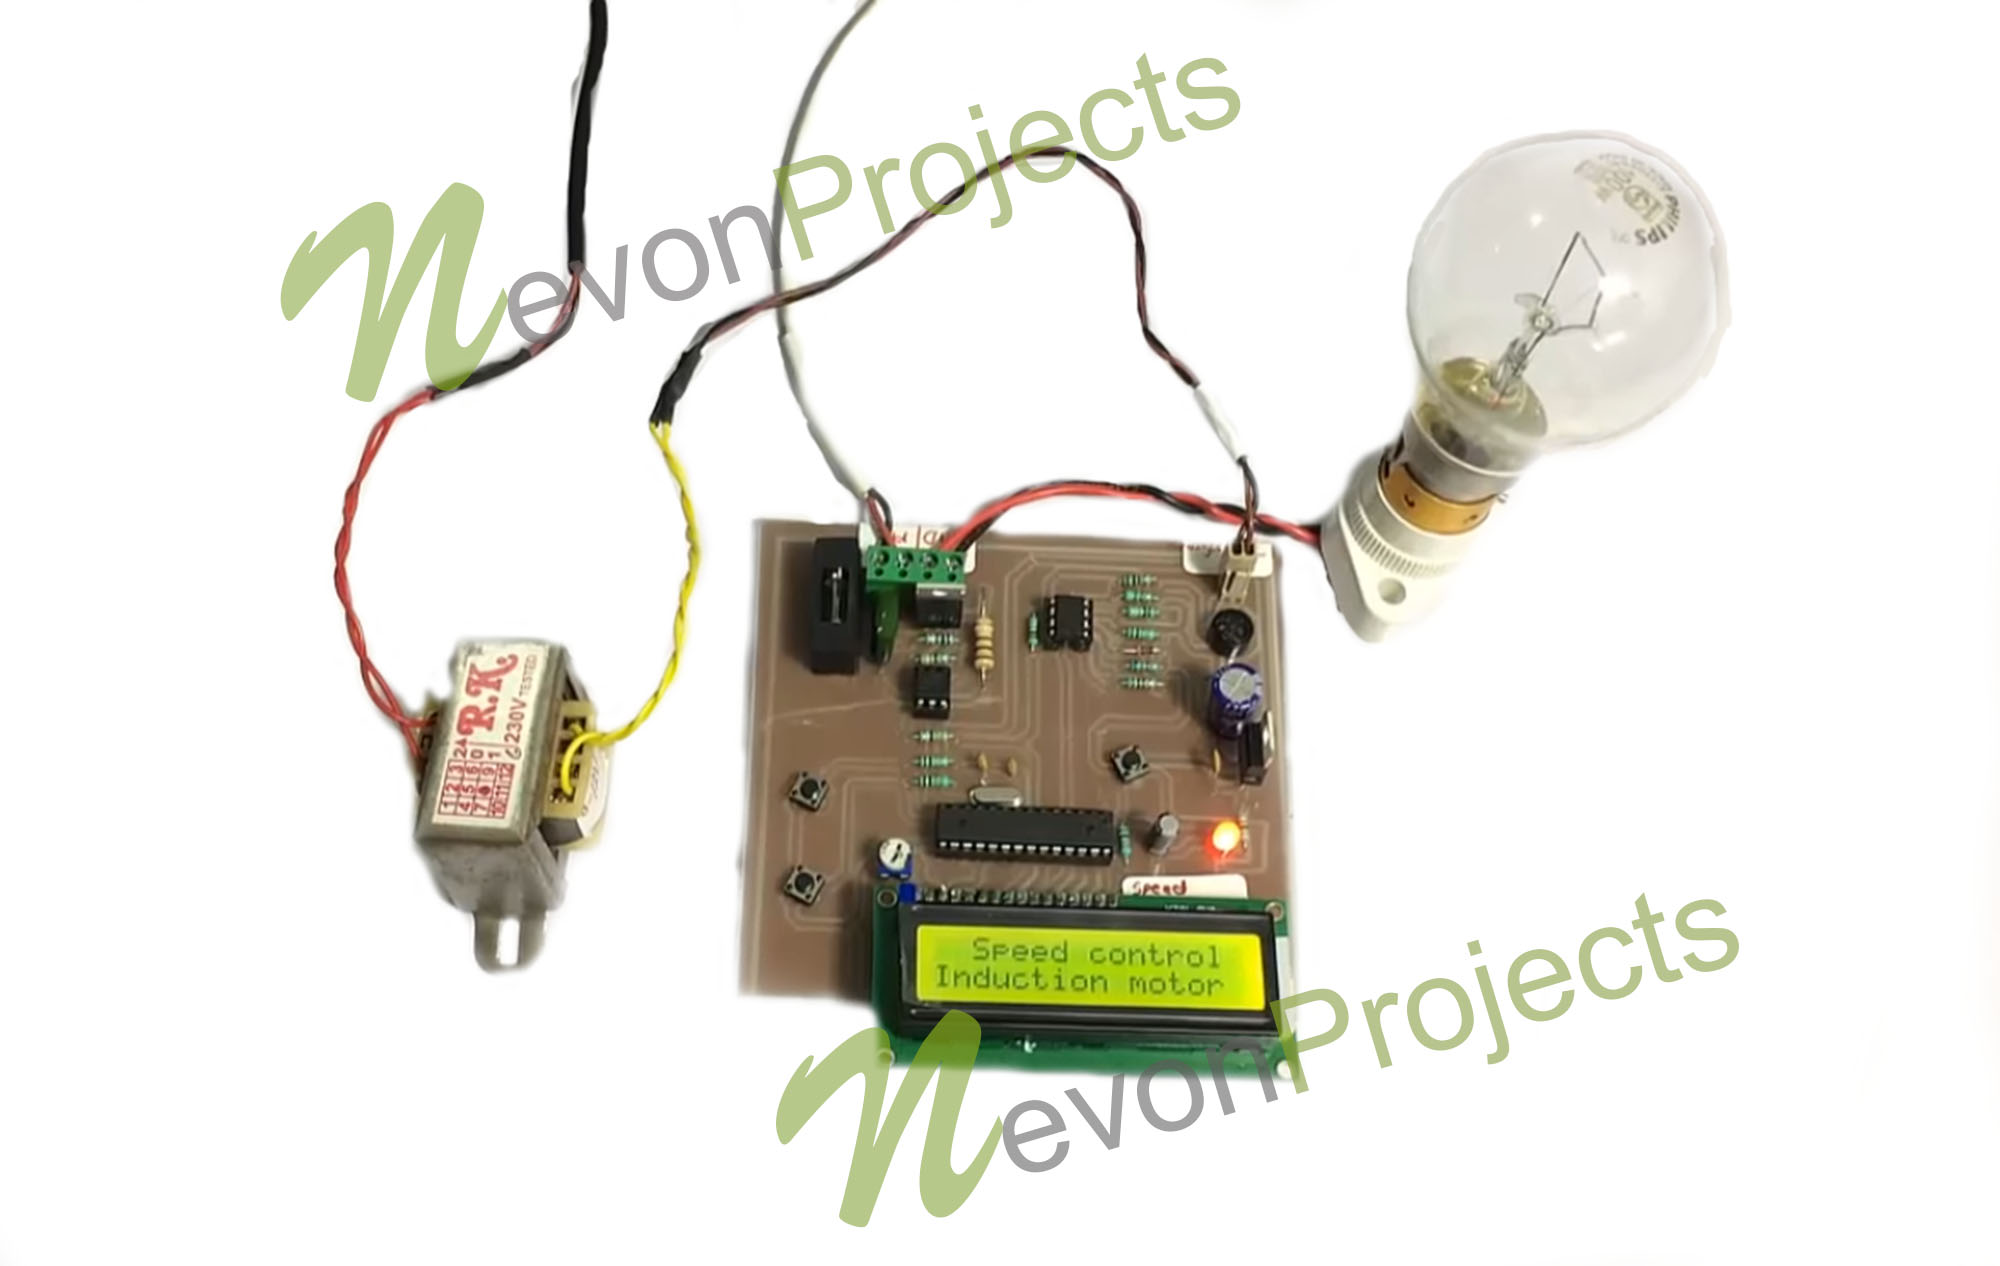 Induction Motor Speed Controller Project Nevonprojects